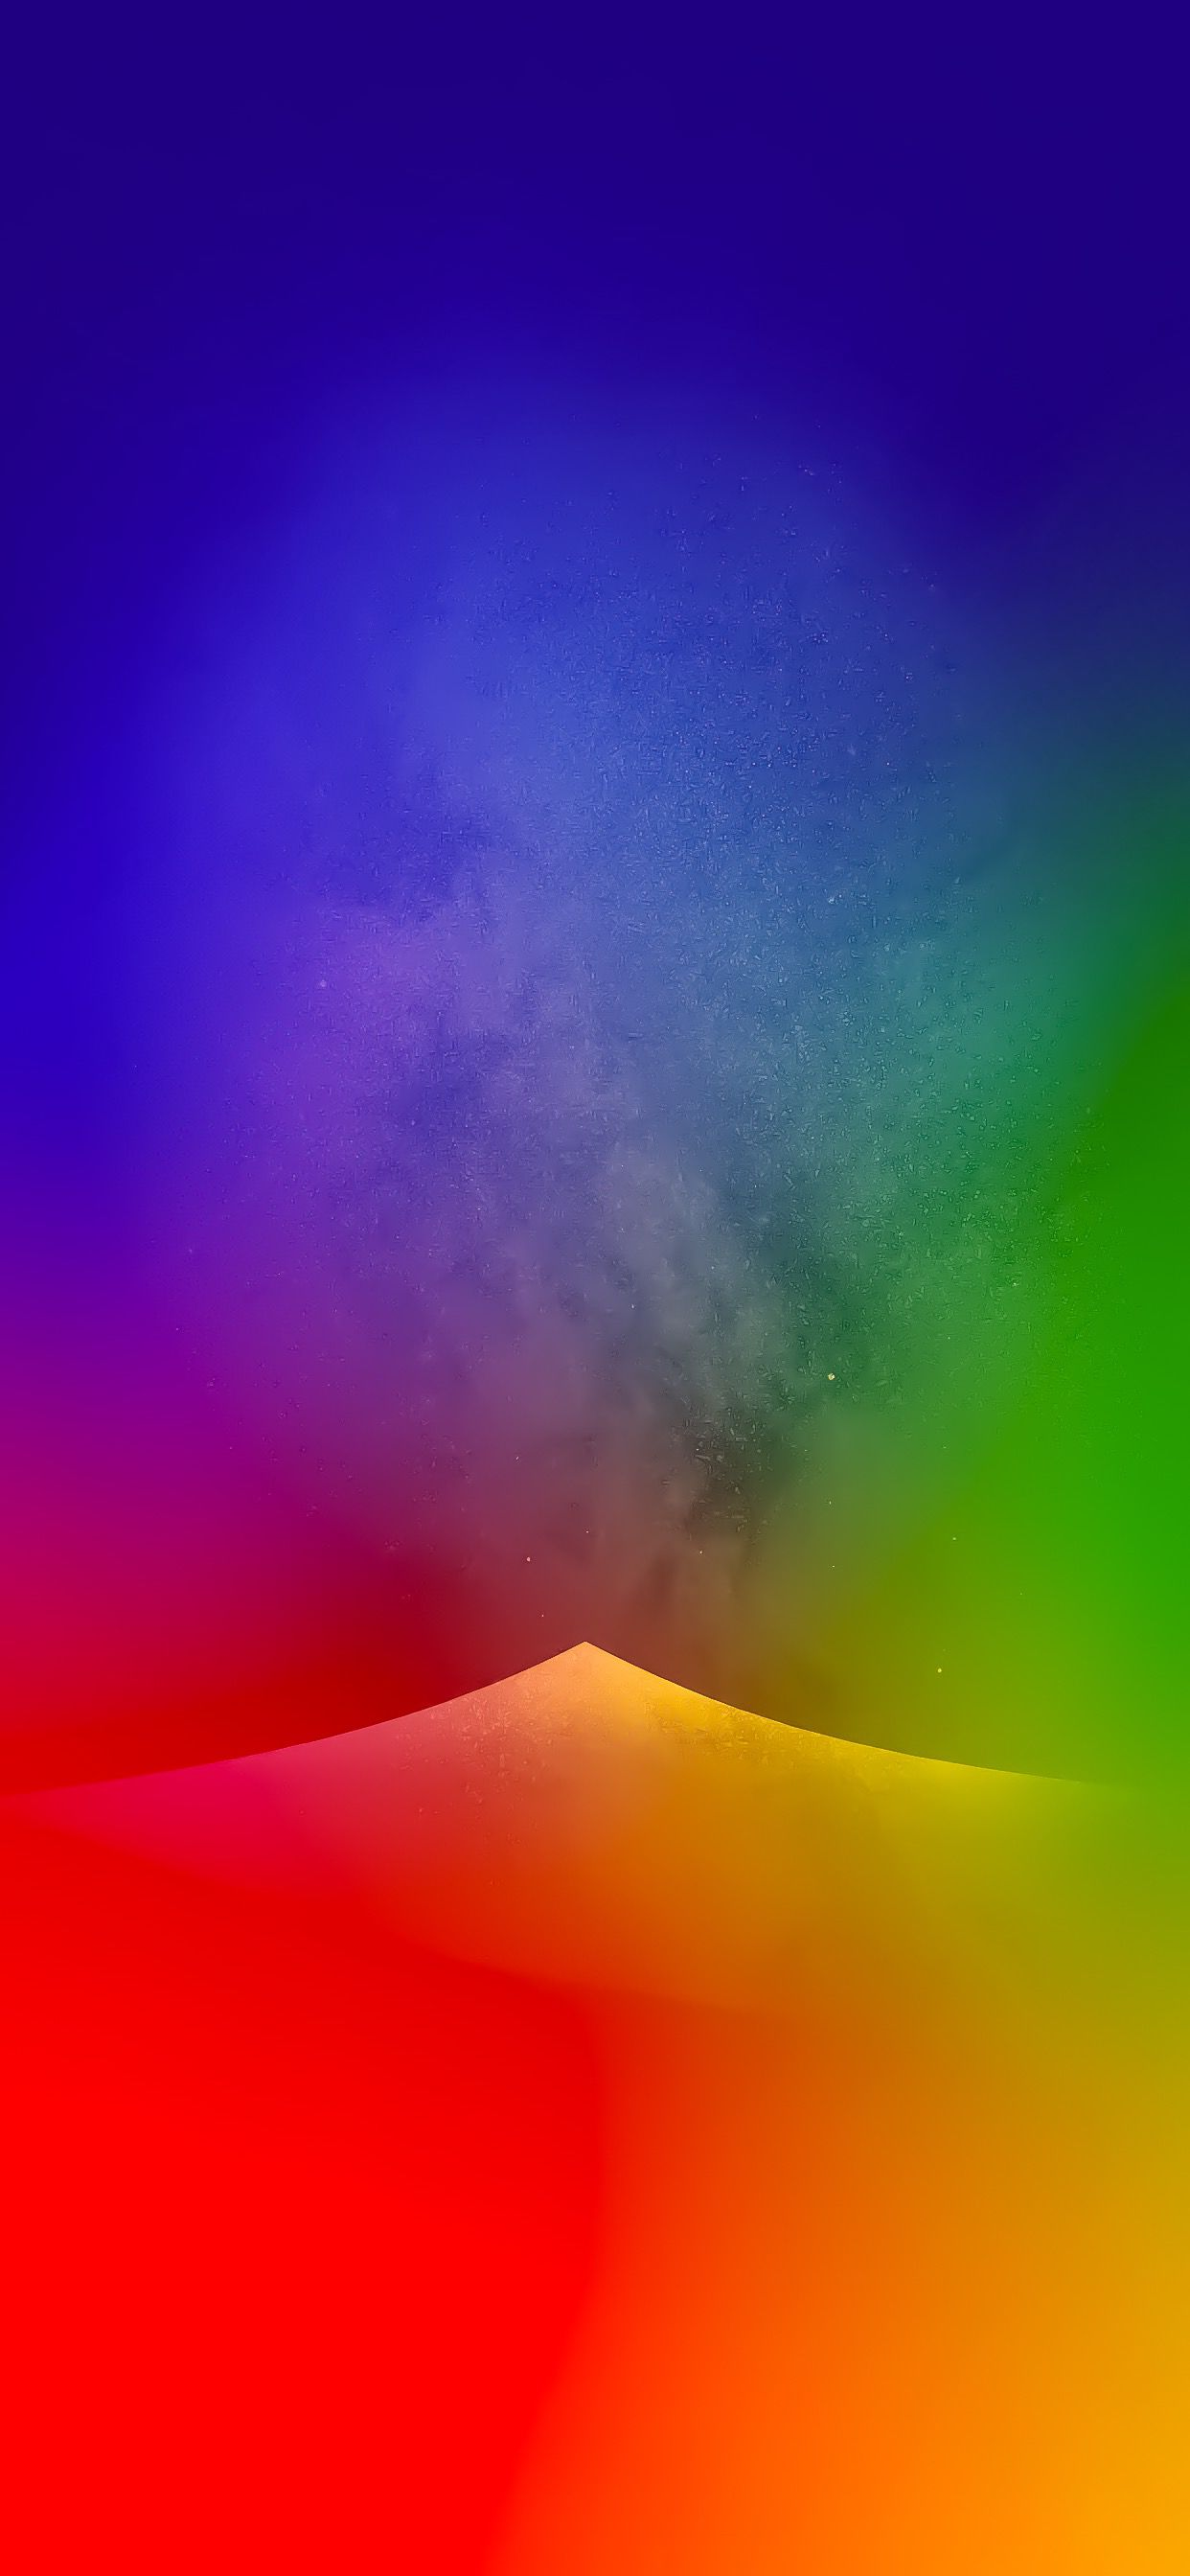 Pin by 19808191 on 壁纸 Abstract iphone wallpaper, Xiaomi